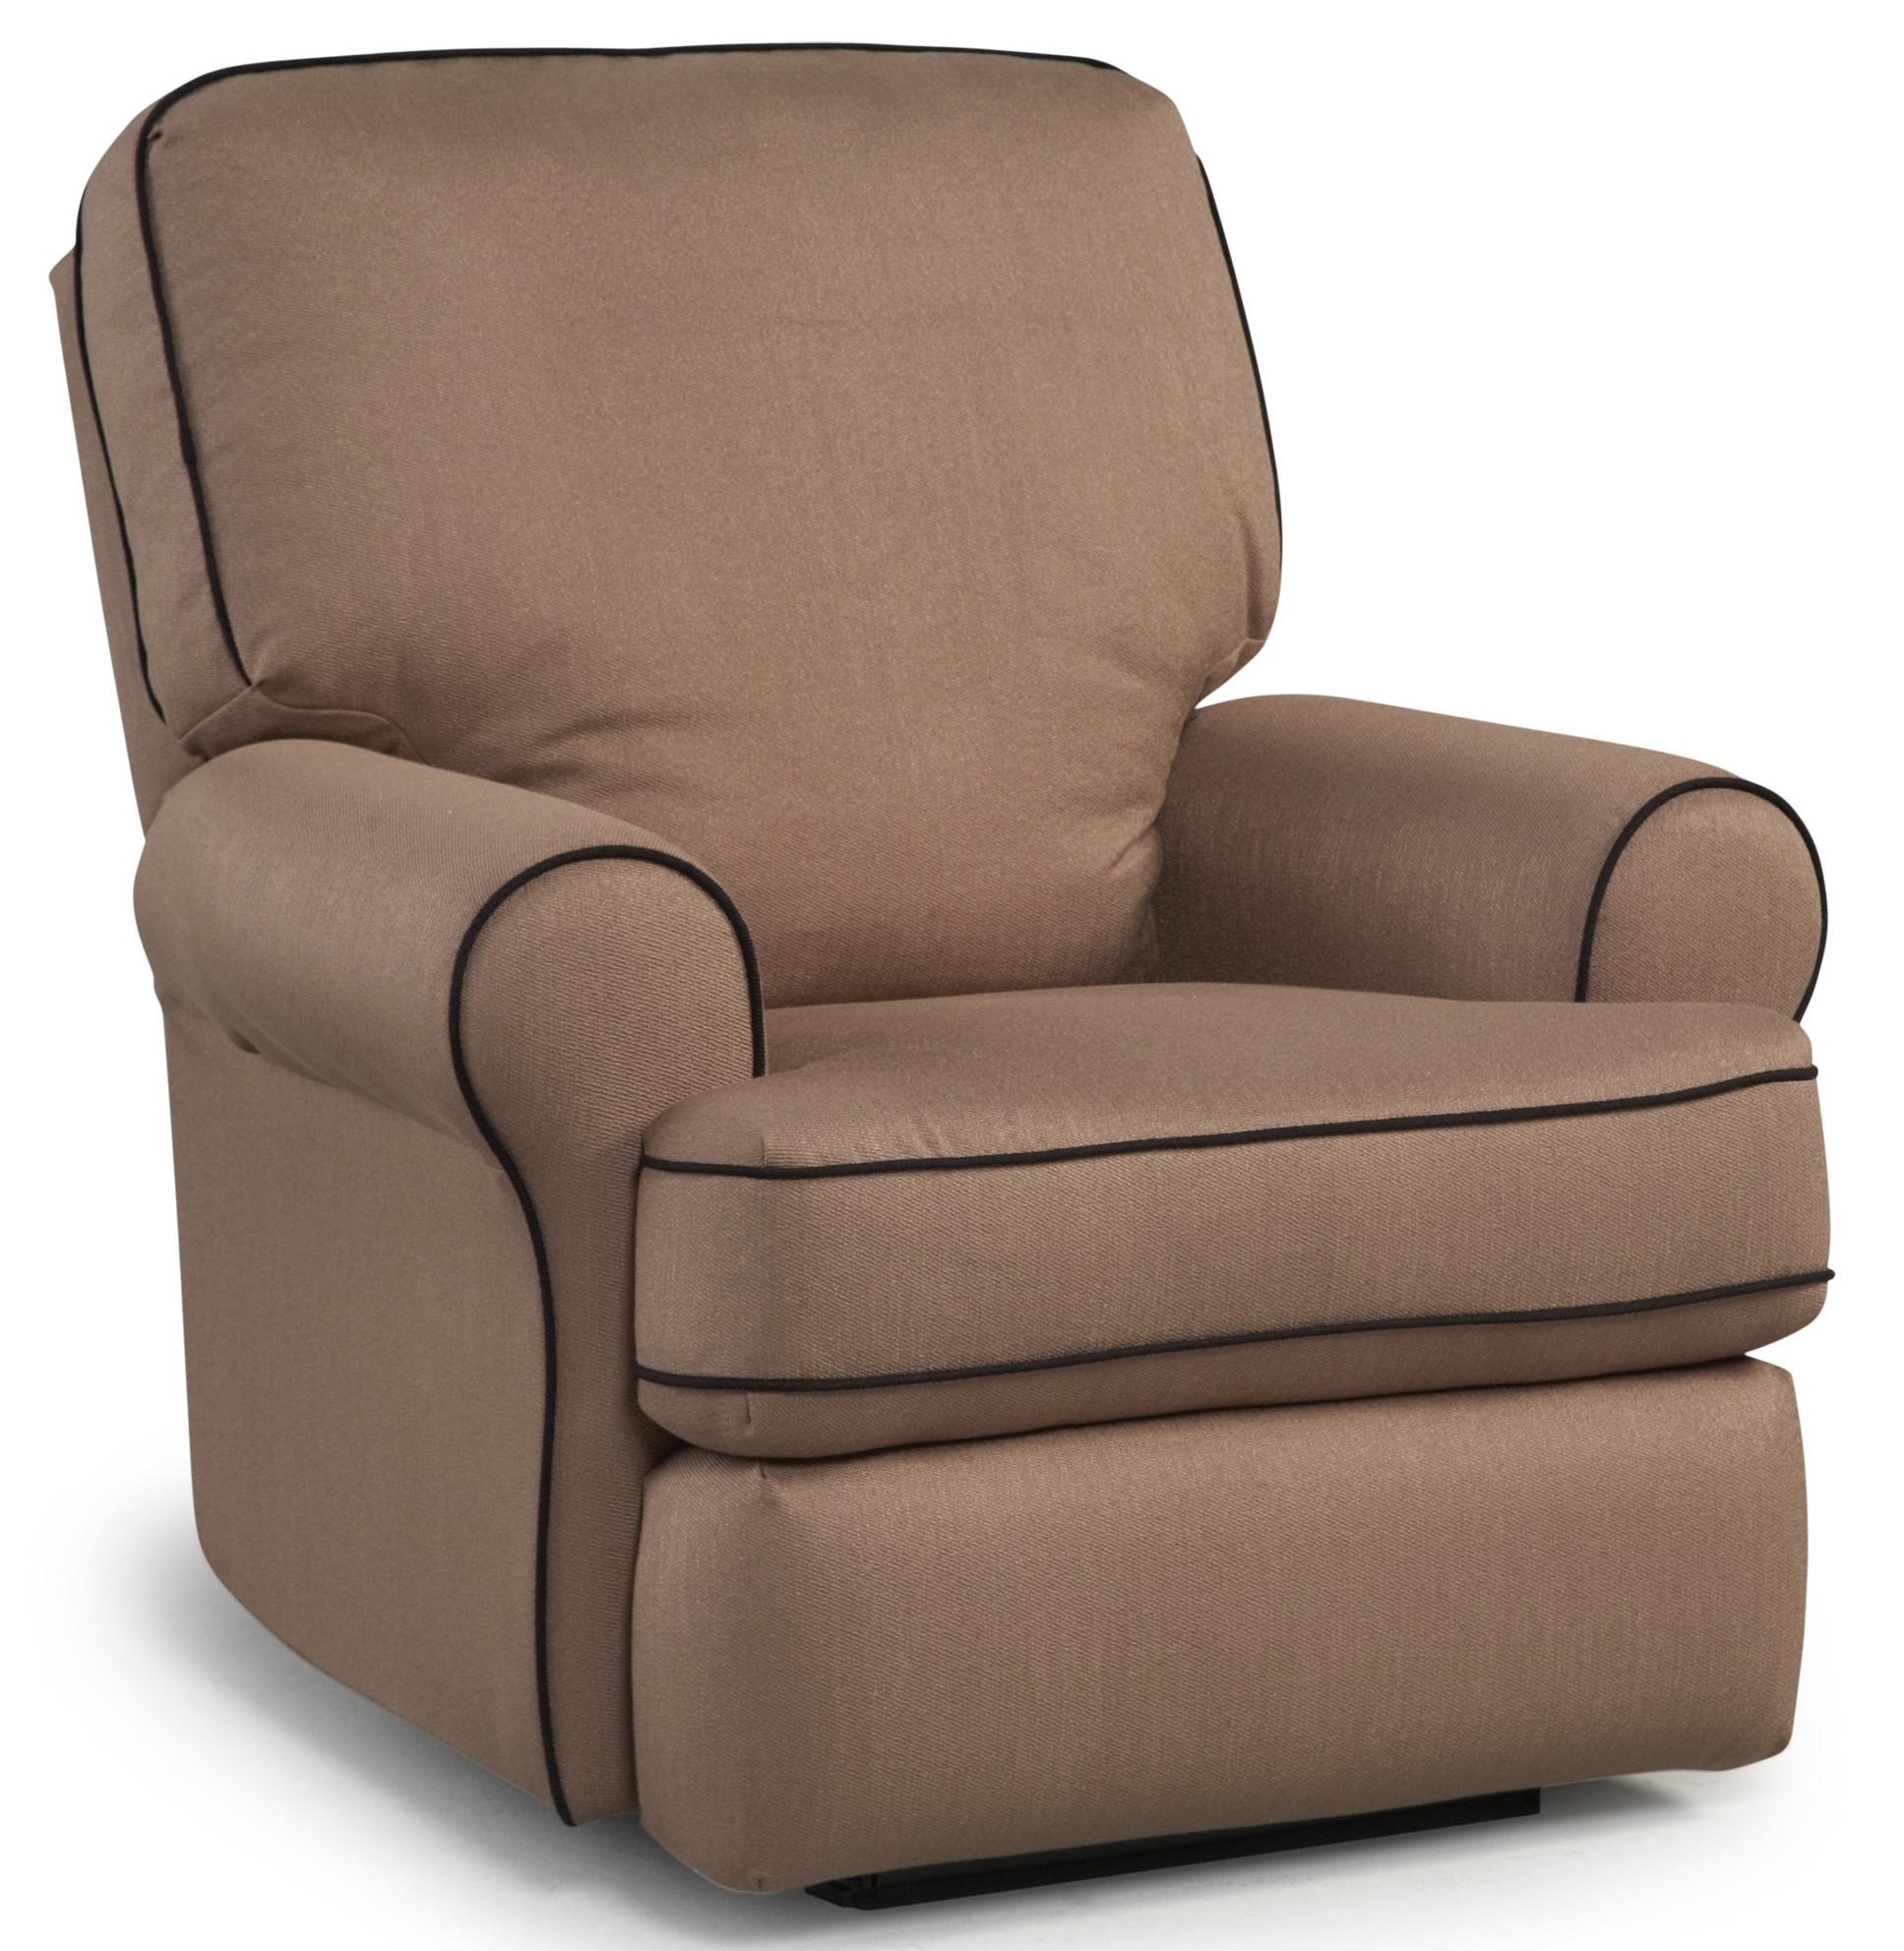 Best Chairs Storytime Series Storytime Recliners Tryp ...